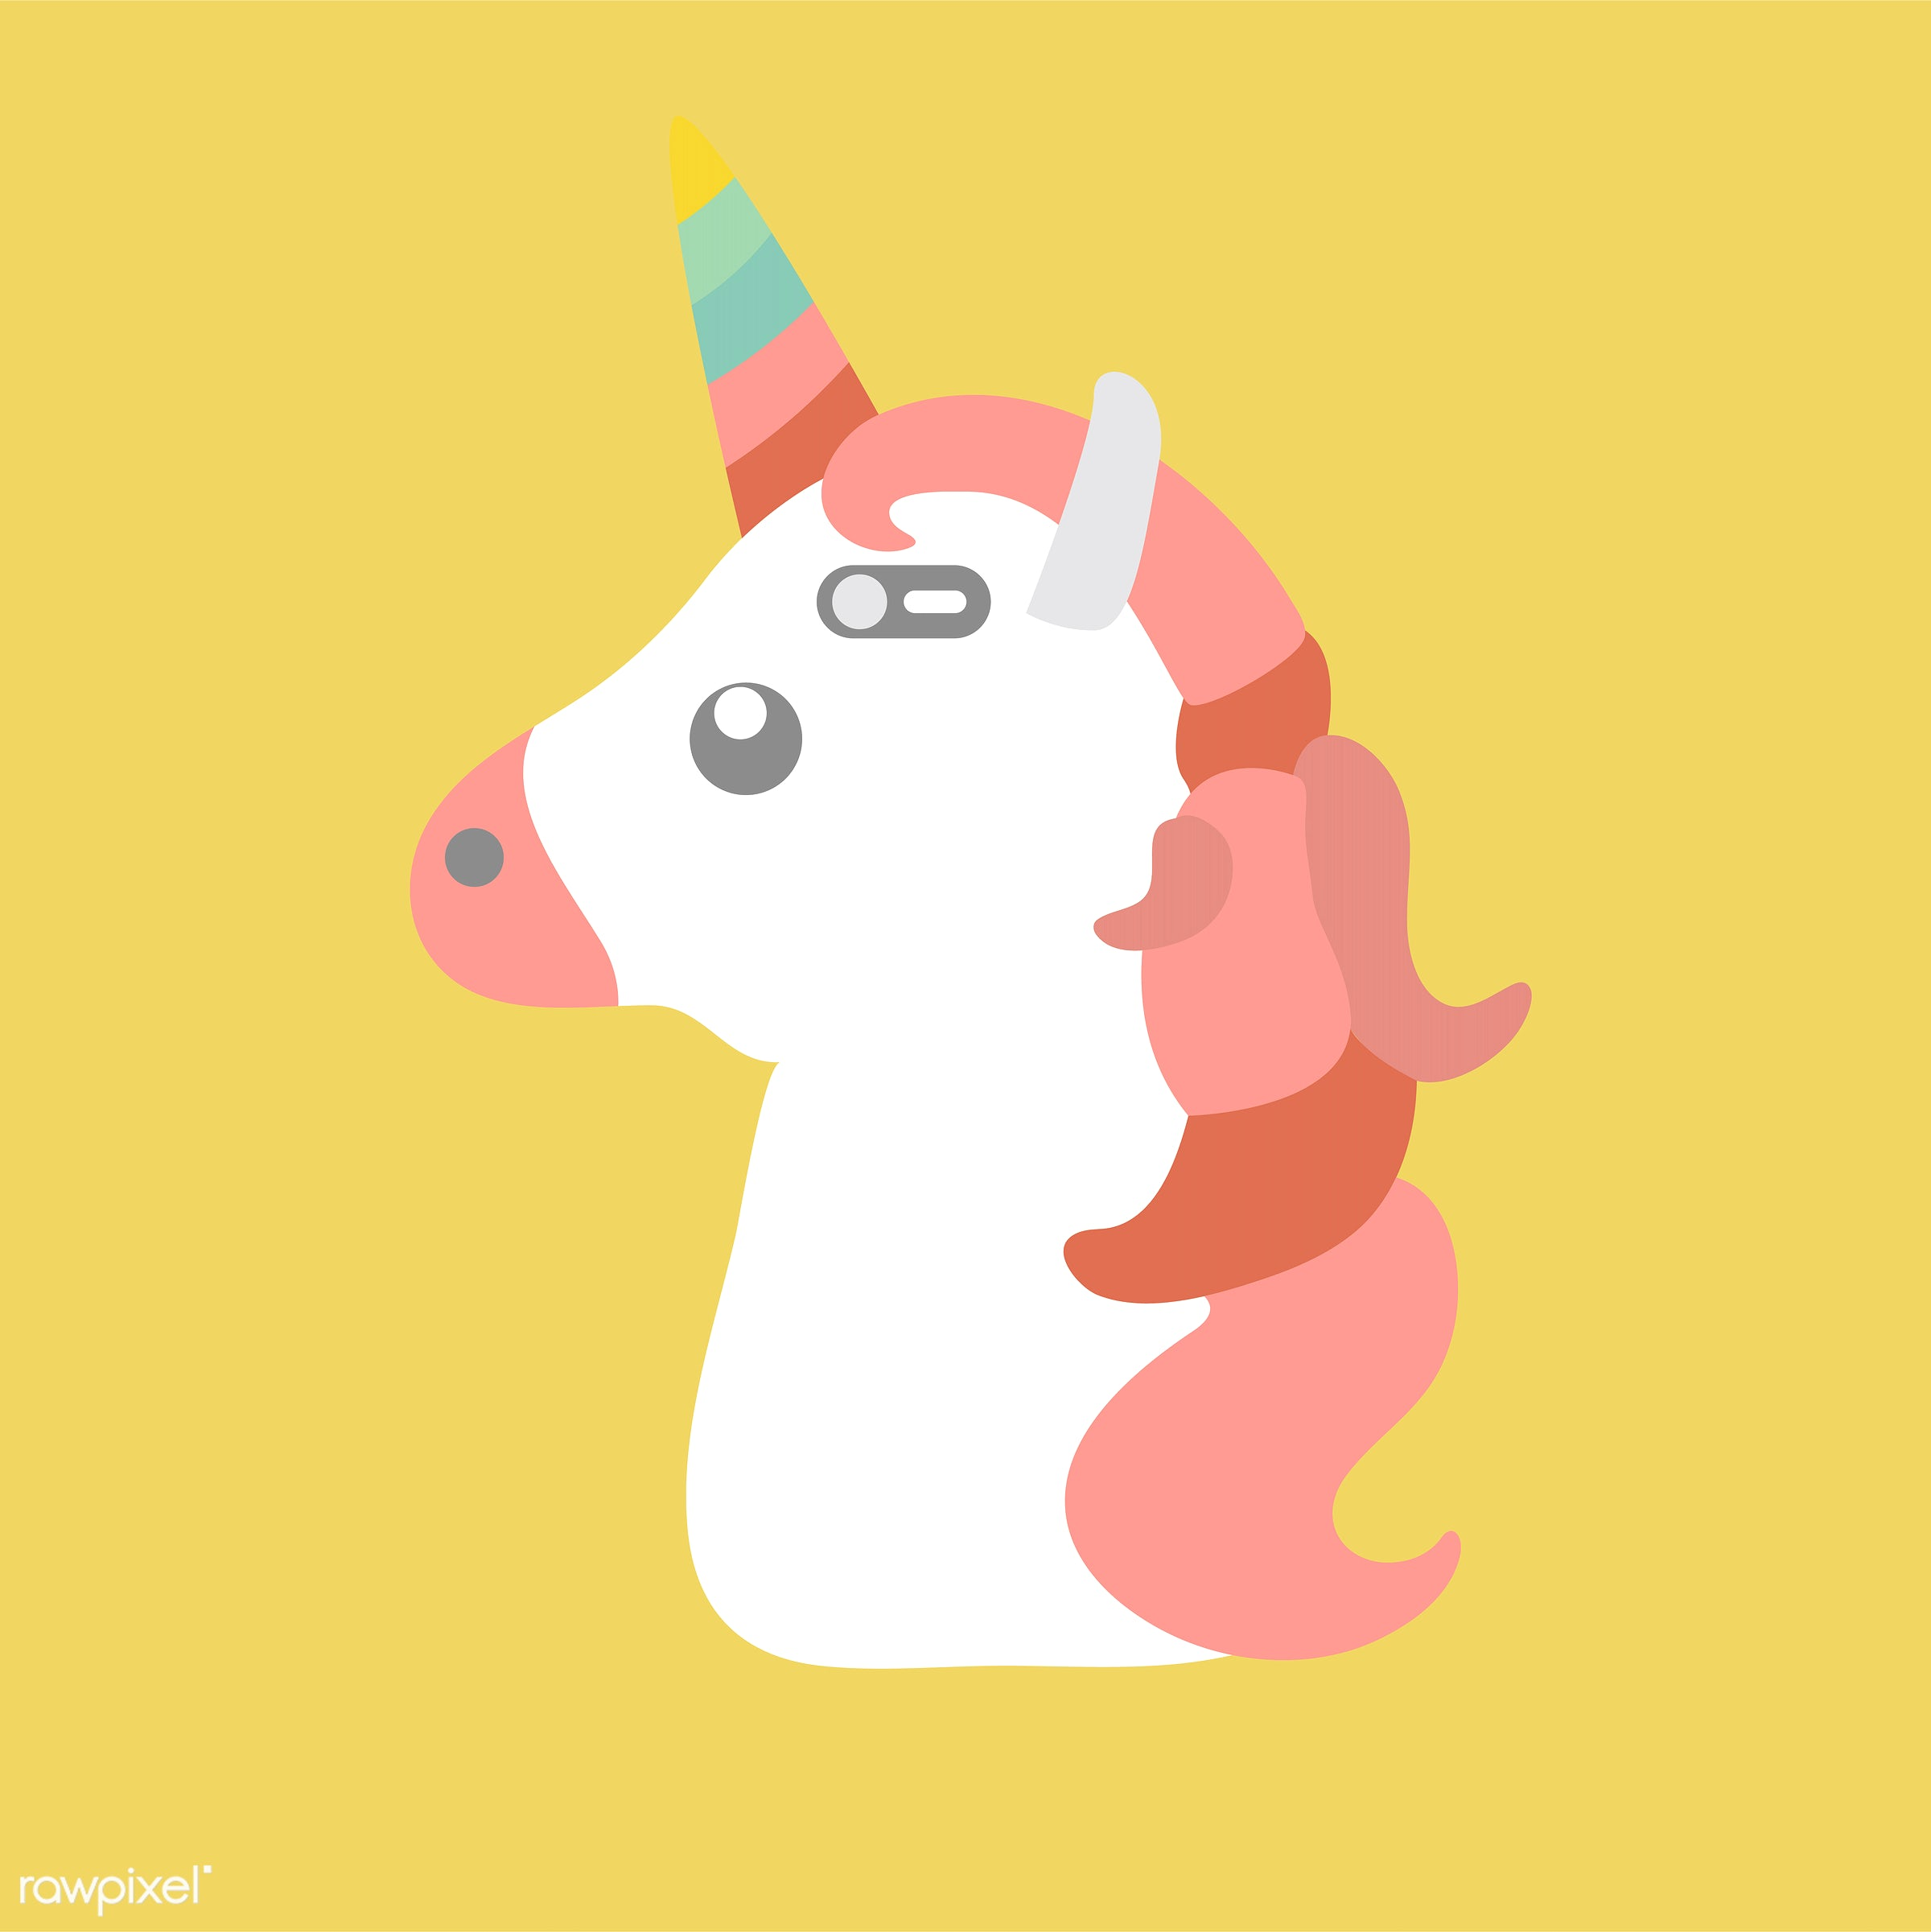 vector, illustration, graphic, cute, sweet, girly, pastel, unicorn, creature, animal